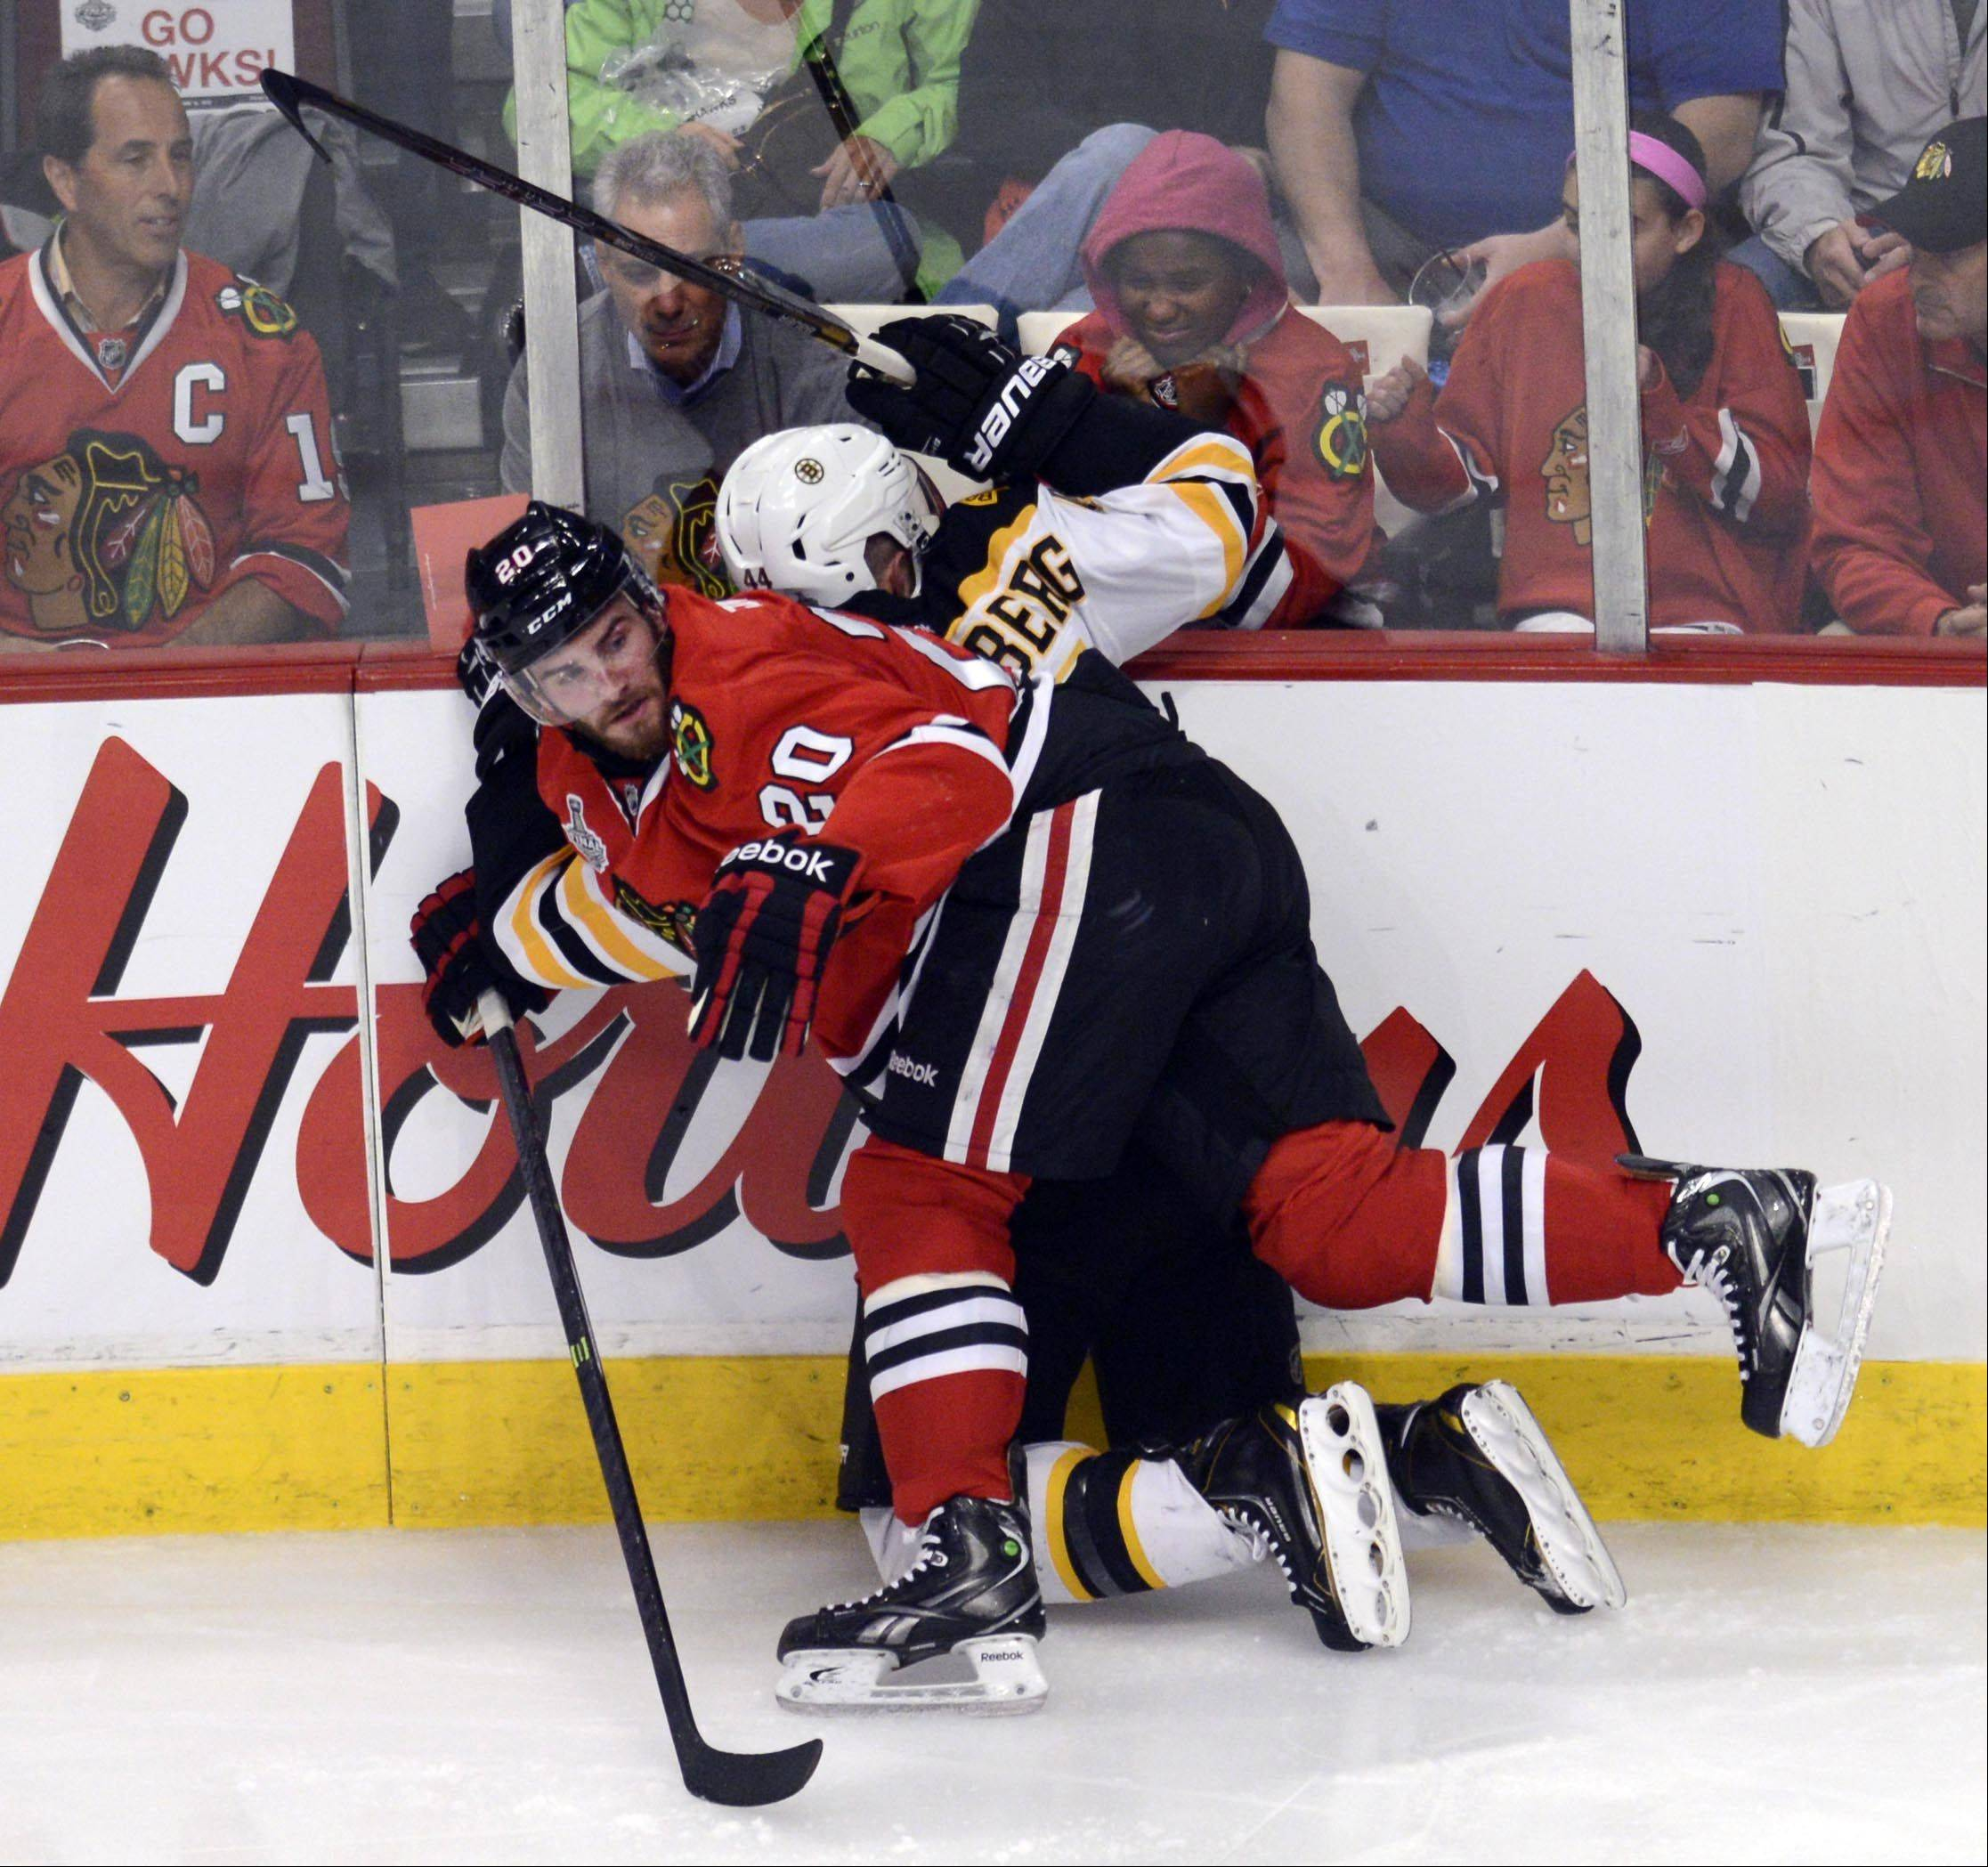 Blackhawks left wing Brandon Saad pins Boston Bruins defenseman Dennis Seidenberg to the boards in front of Chicago Mayor Rahm Emanuel during Game 1 of the Stanley Cup Final on Wednesday at the United Center in Chicago.